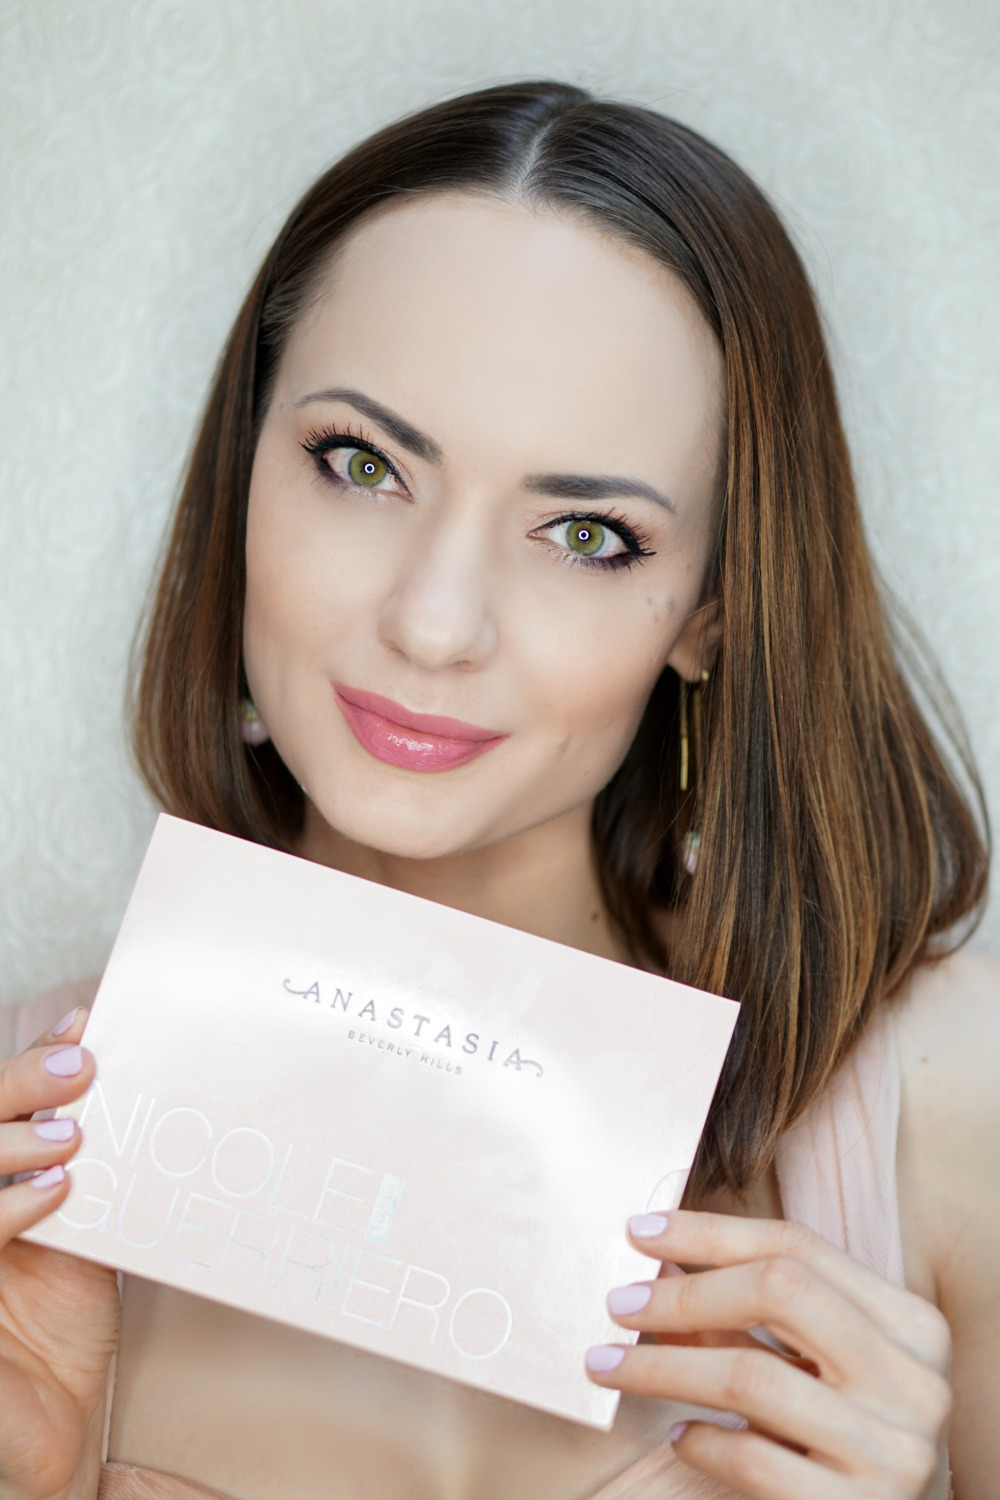 ABH Nicole Guerriero Glow Kit review 7